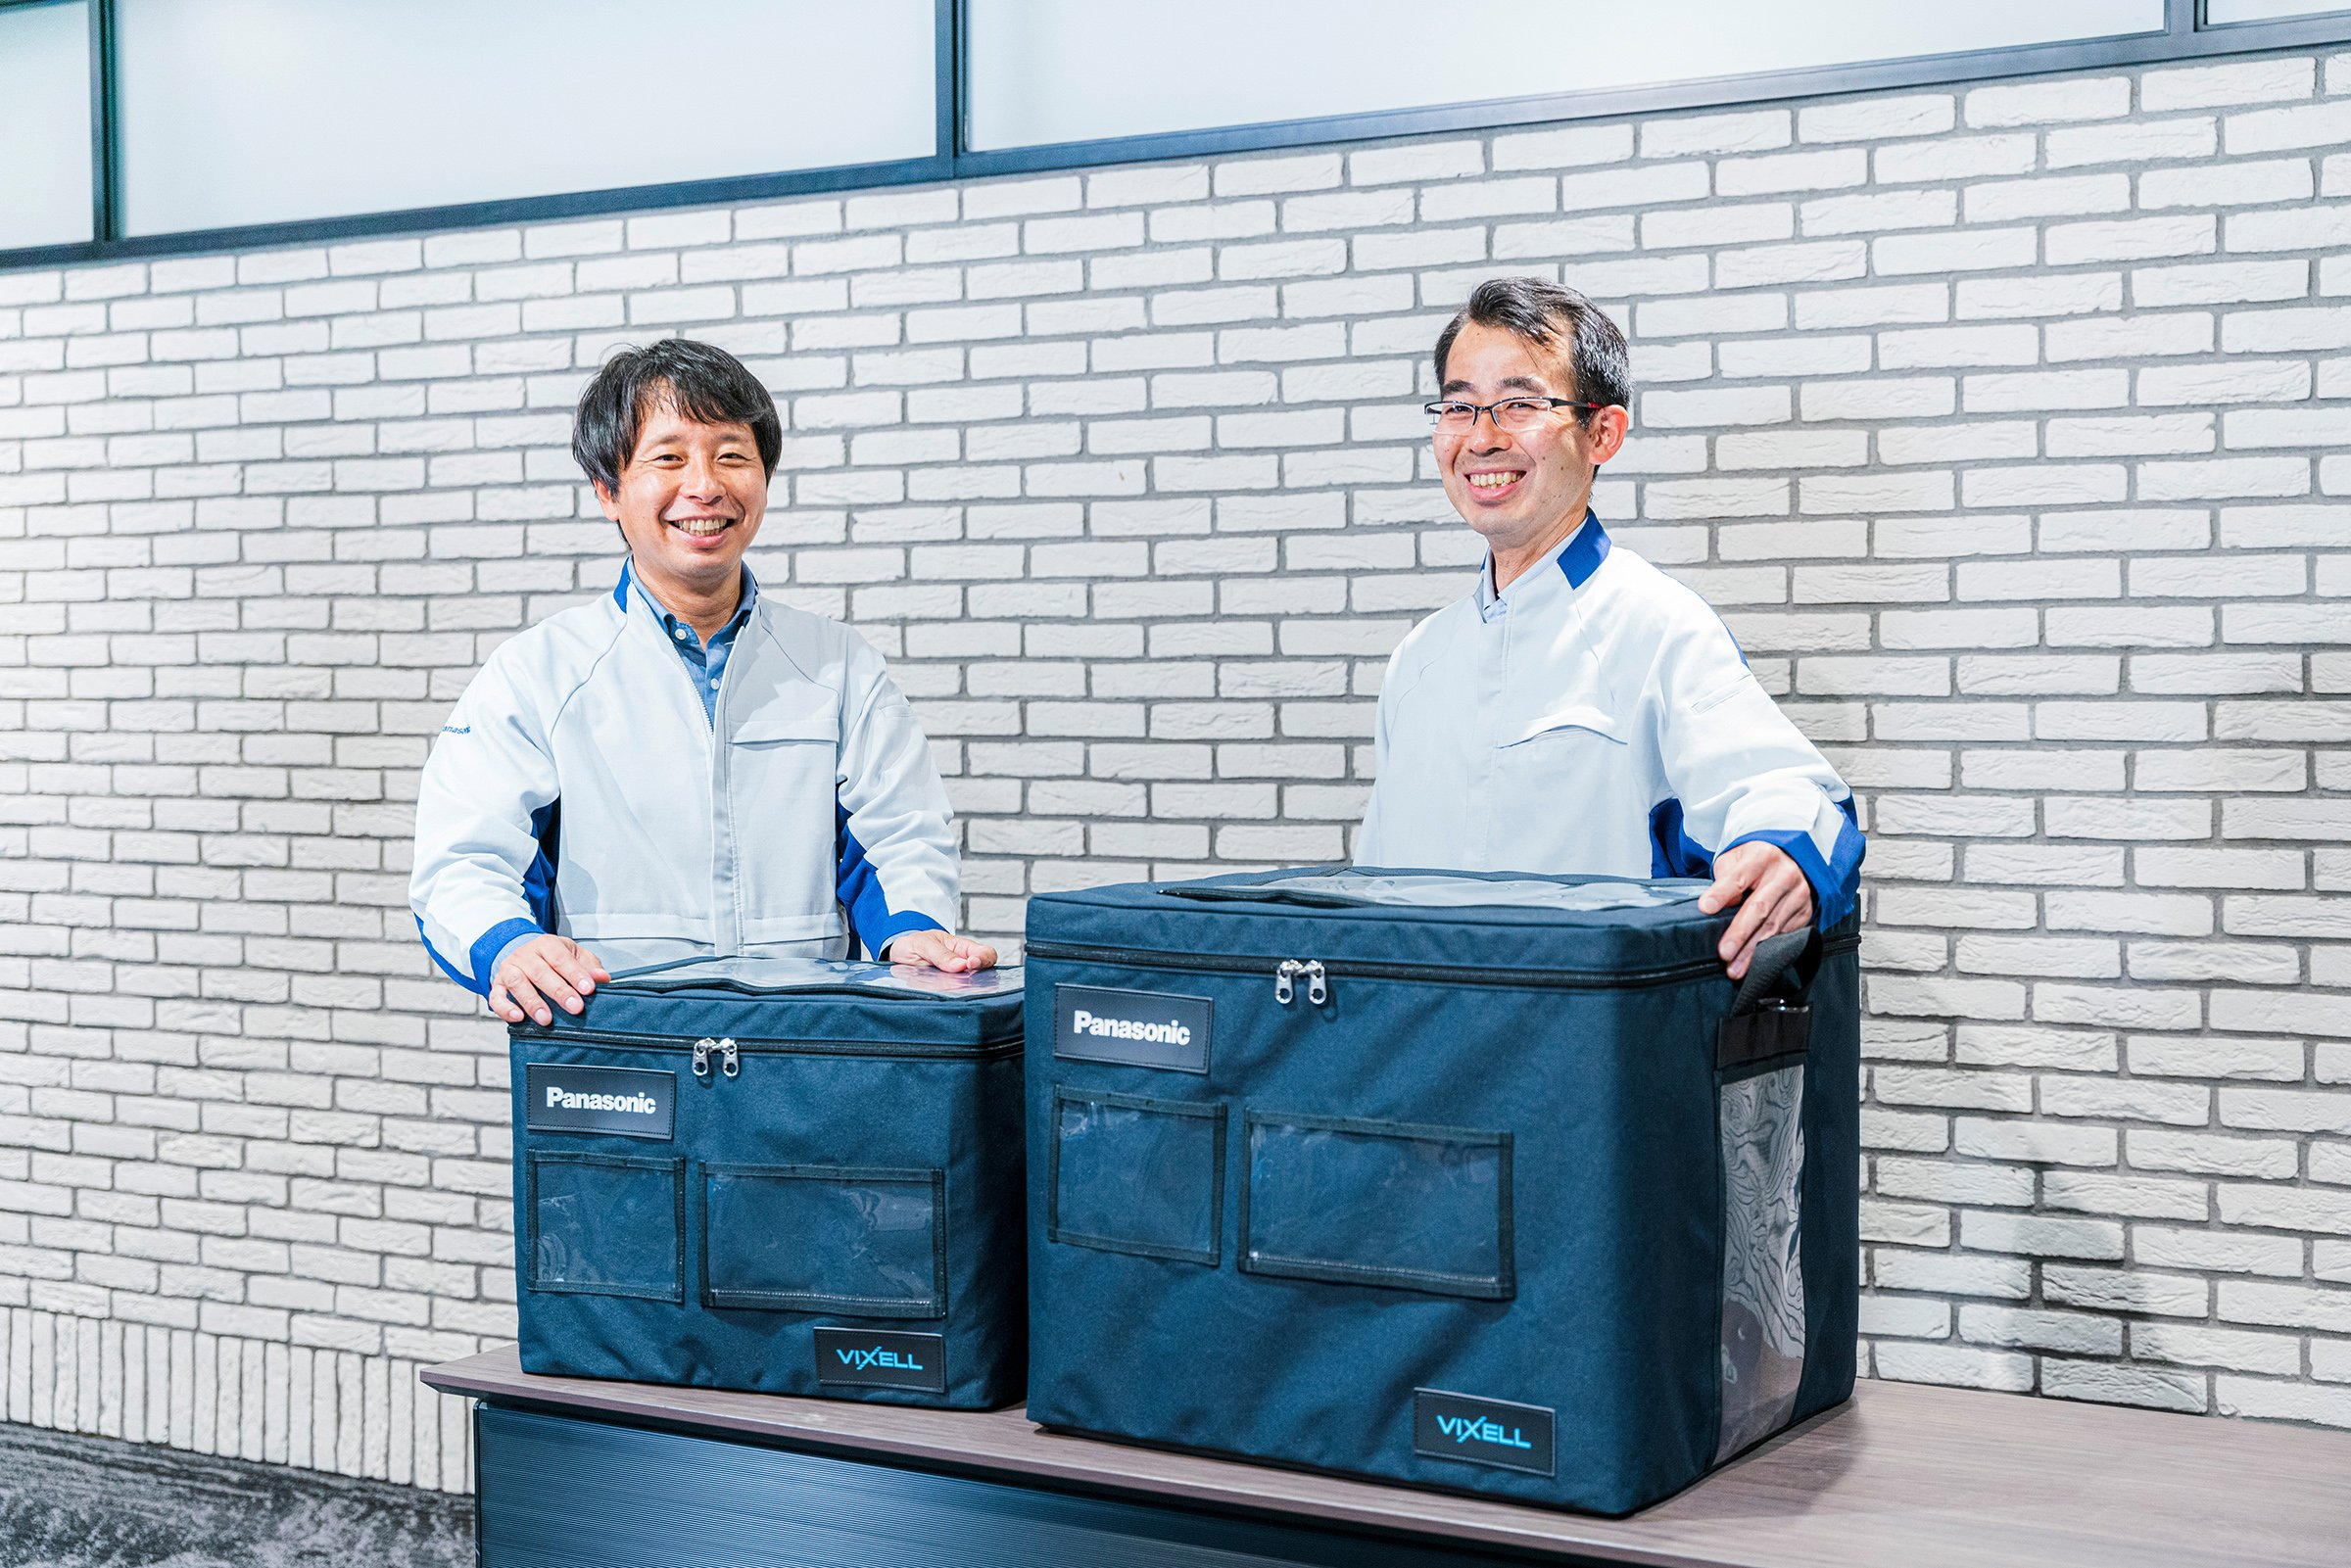 Photo: The happy development team leaders with the new VIXELL containers.